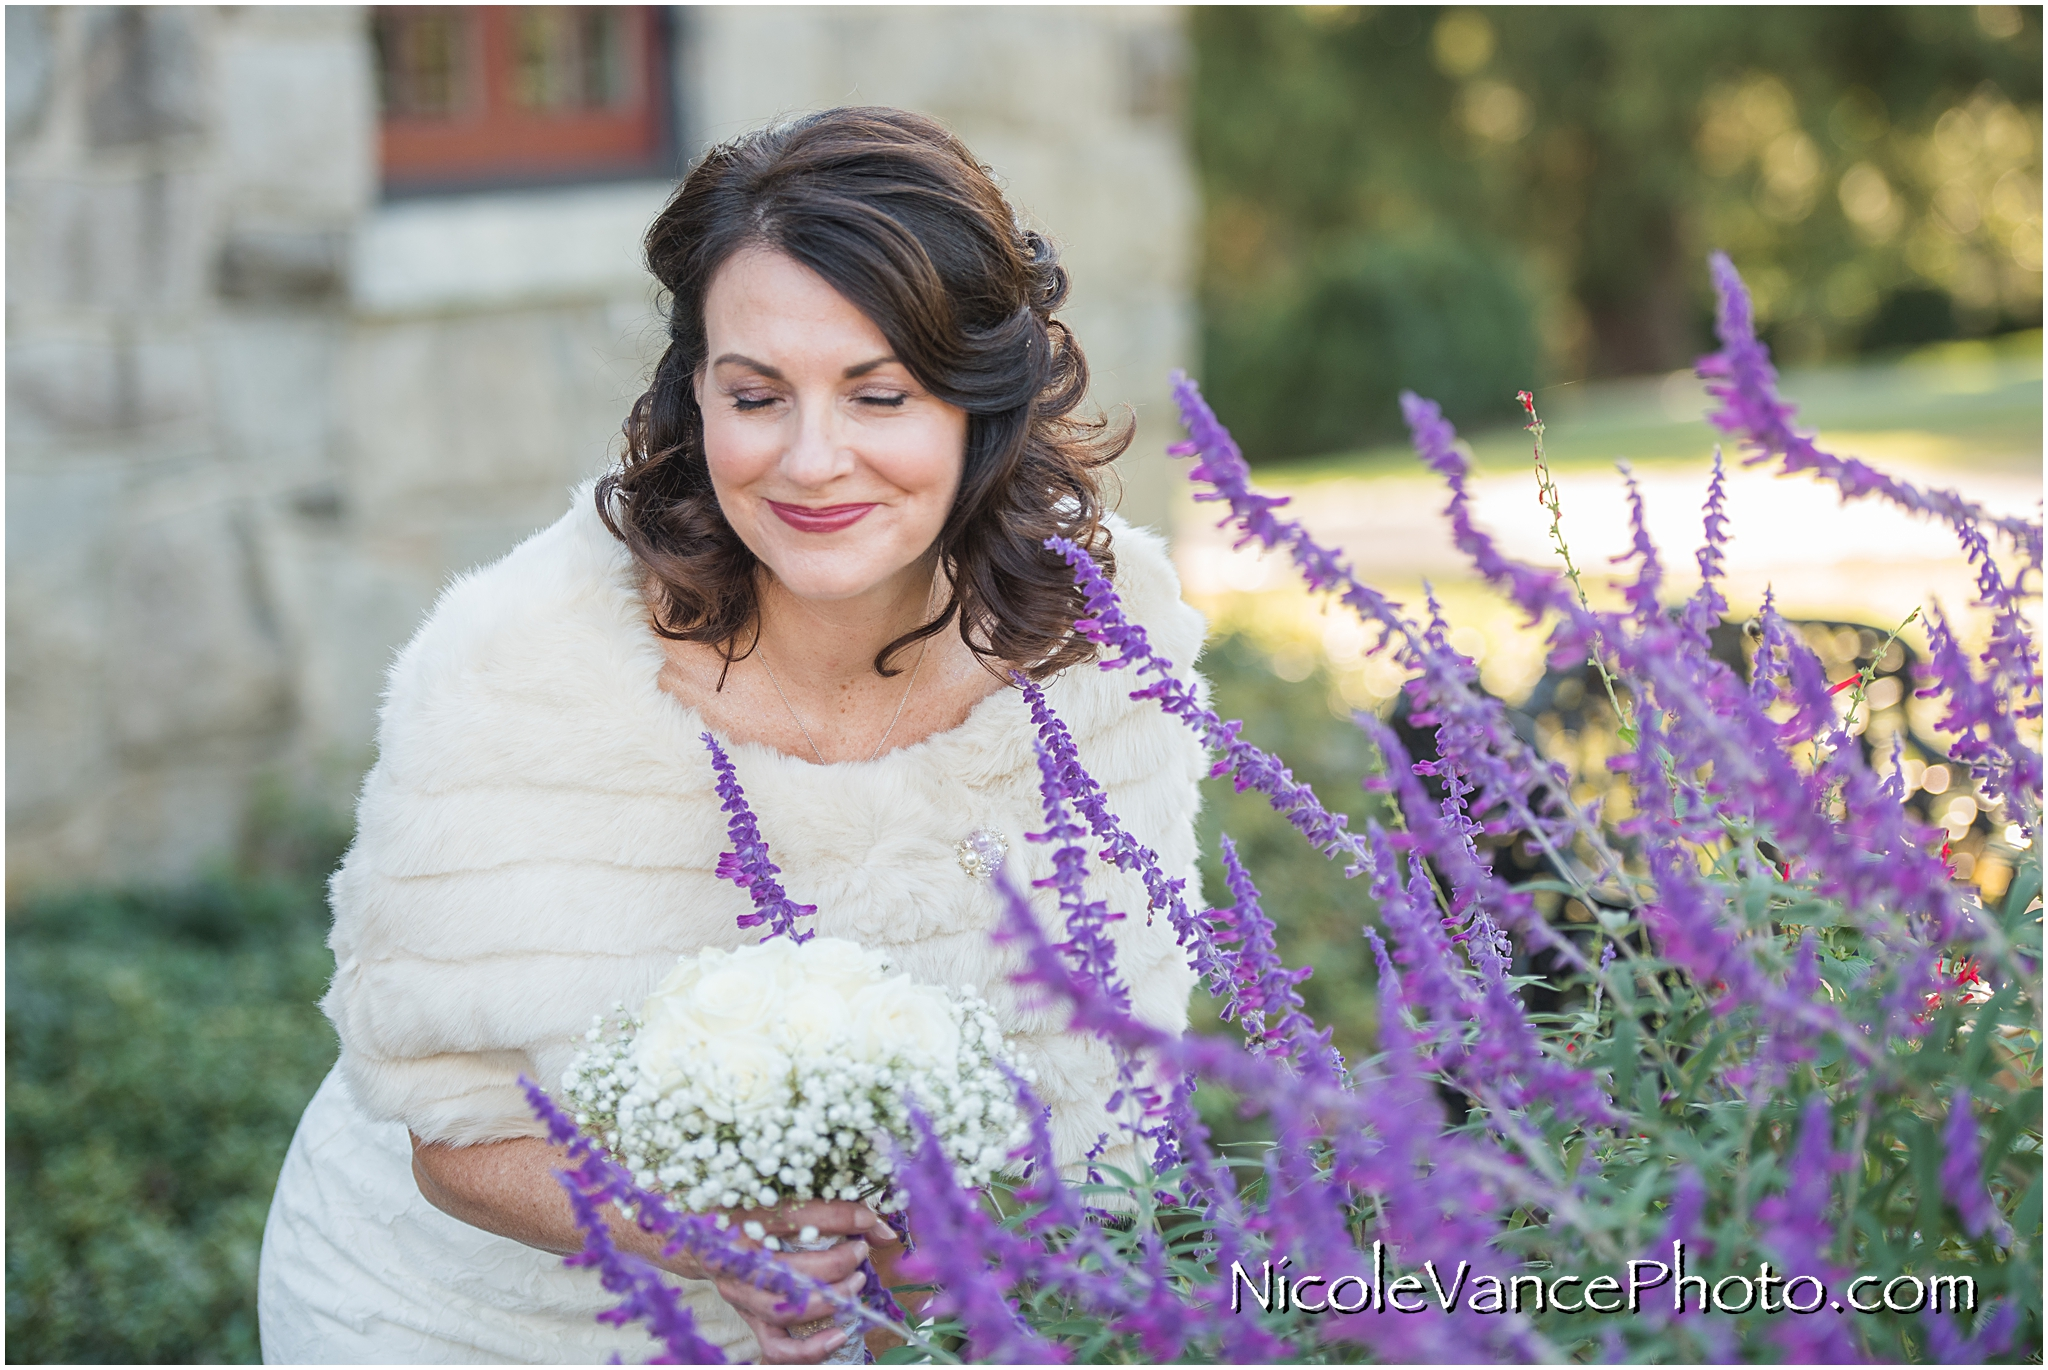 I love this candid photo of the bride smelling the flowers in the garden at Maymont Park in Richmond Virginia.